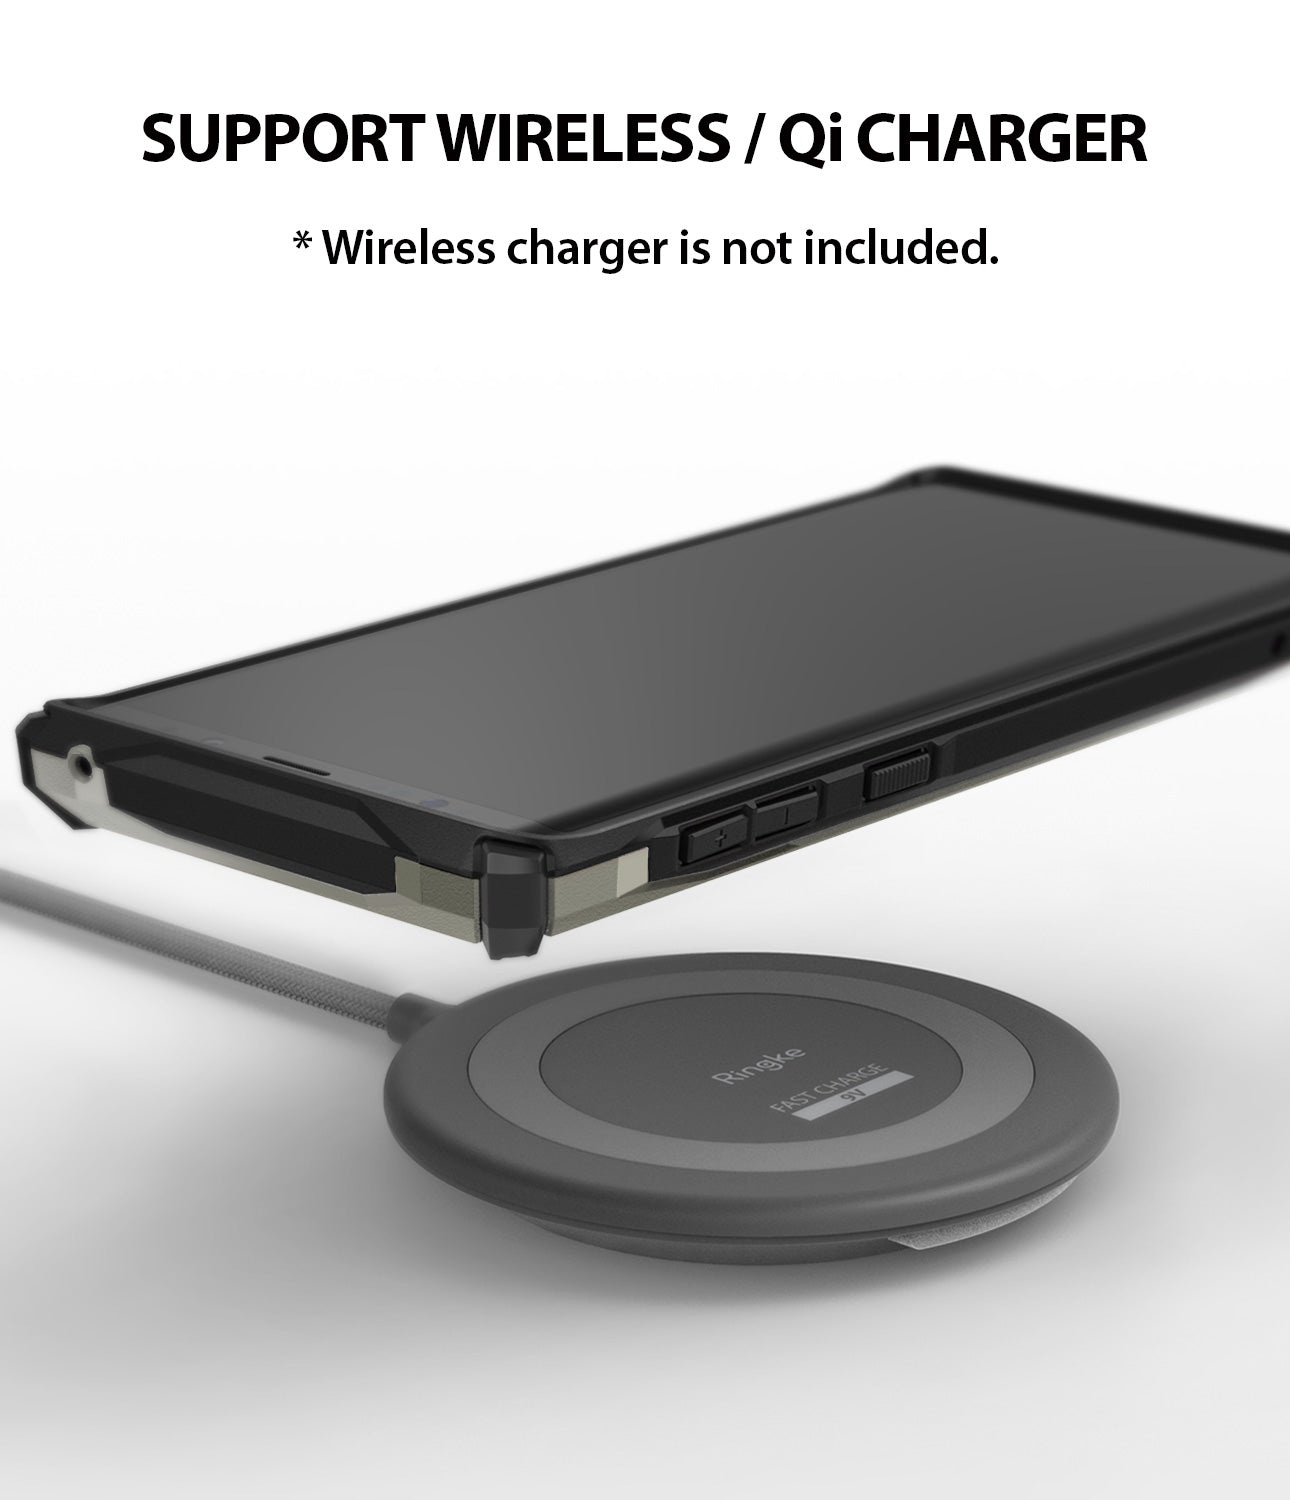 support wireless / qi charger